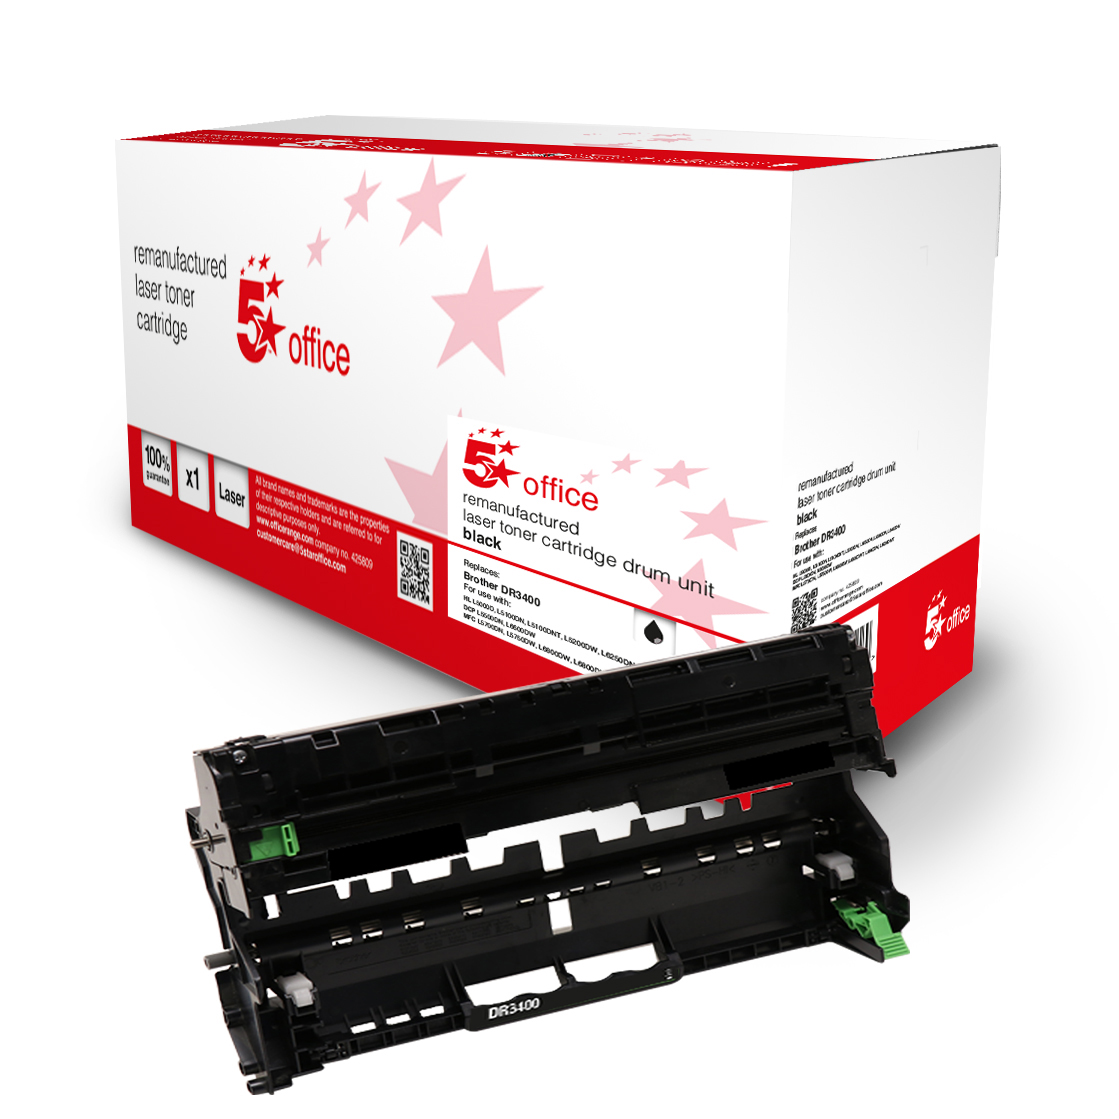 Drum Units 5 Star Office Remanufactured Laser Drum Page Life Black 50000pp Brother DR3400 Alternative